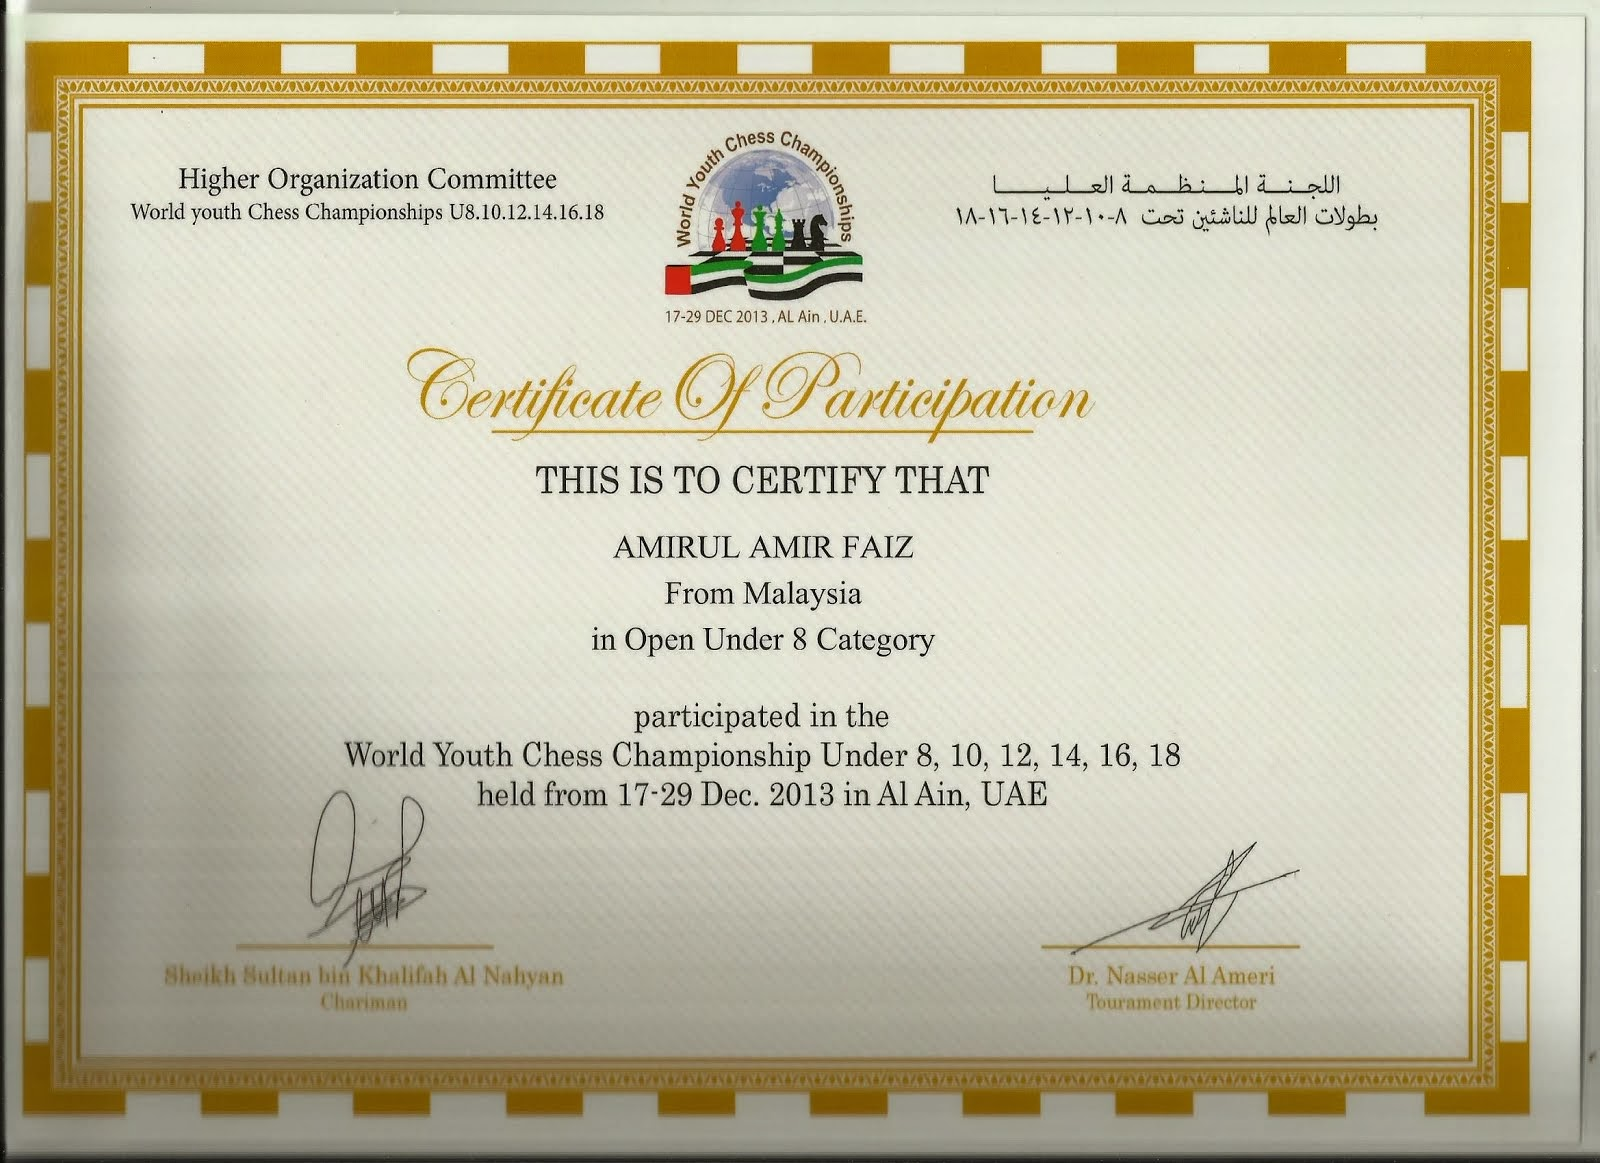 Amfa chess family 2013 msswp bangsar zone chess certificates uae wycc 2013 certificate of participation xflitez Image collections